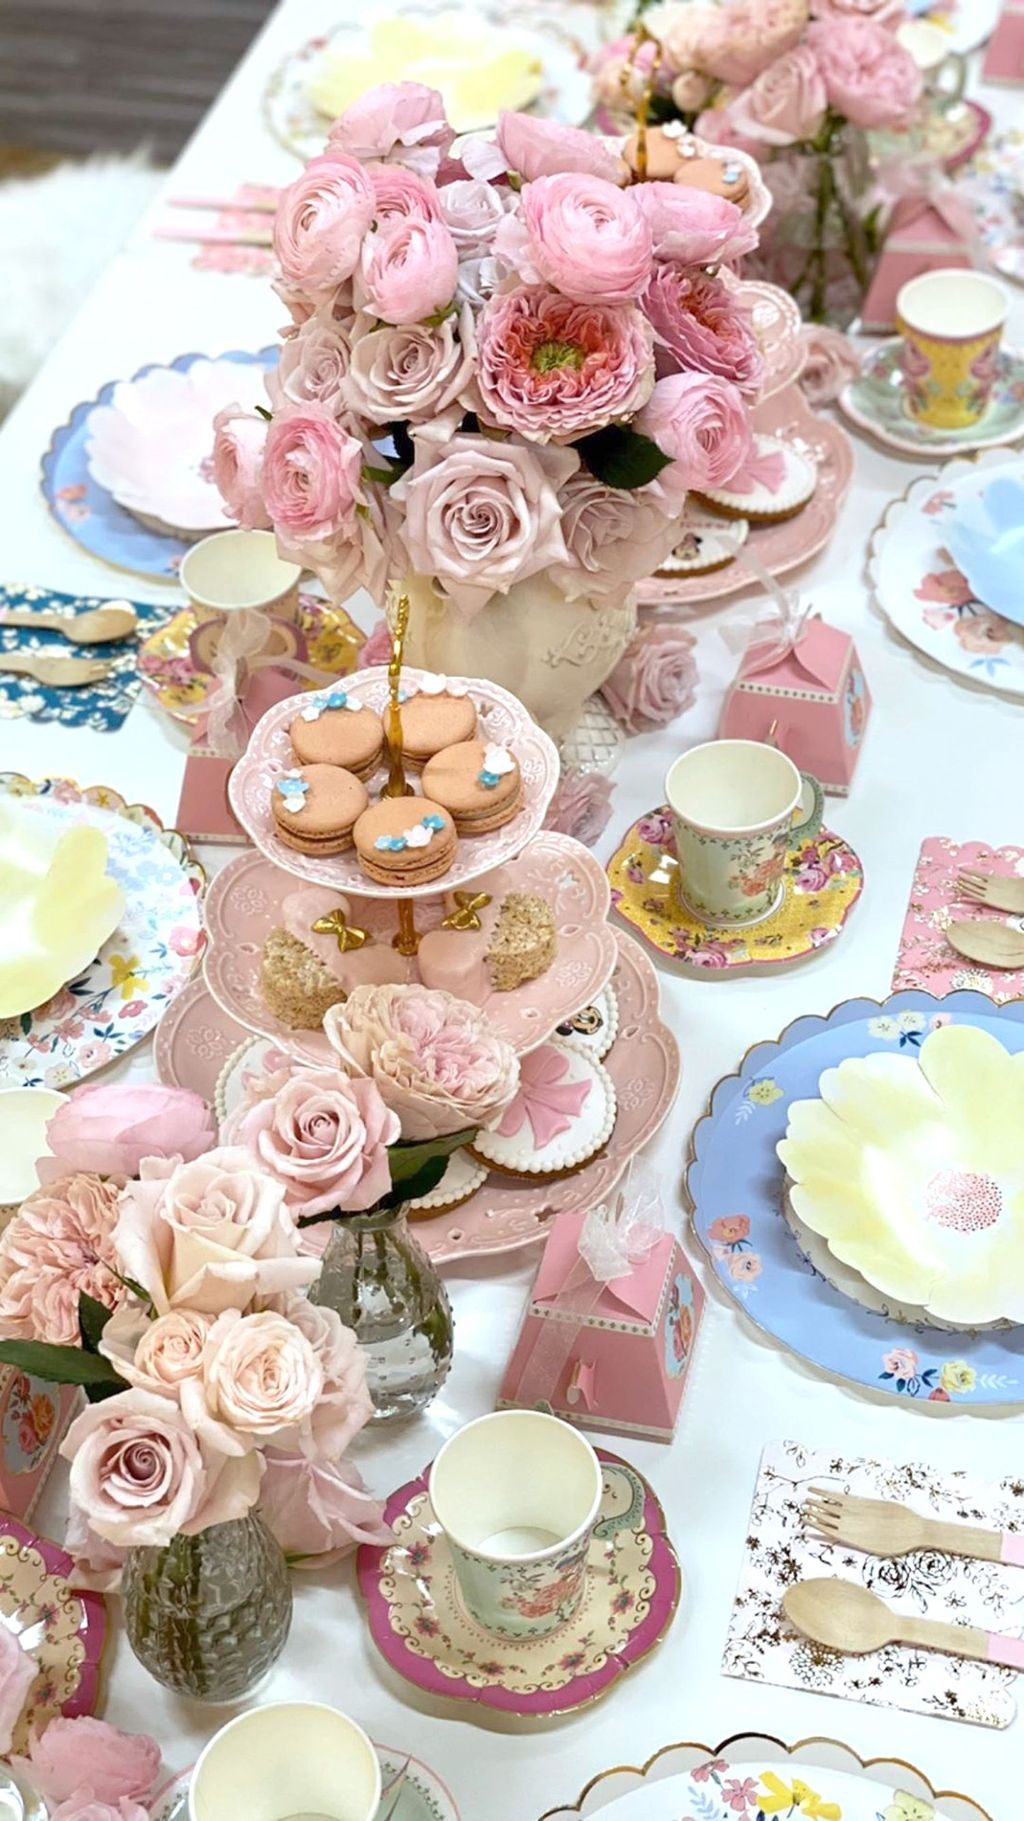 Fabulous Floral Theme Party Decor Ideas Best For Summertime 14